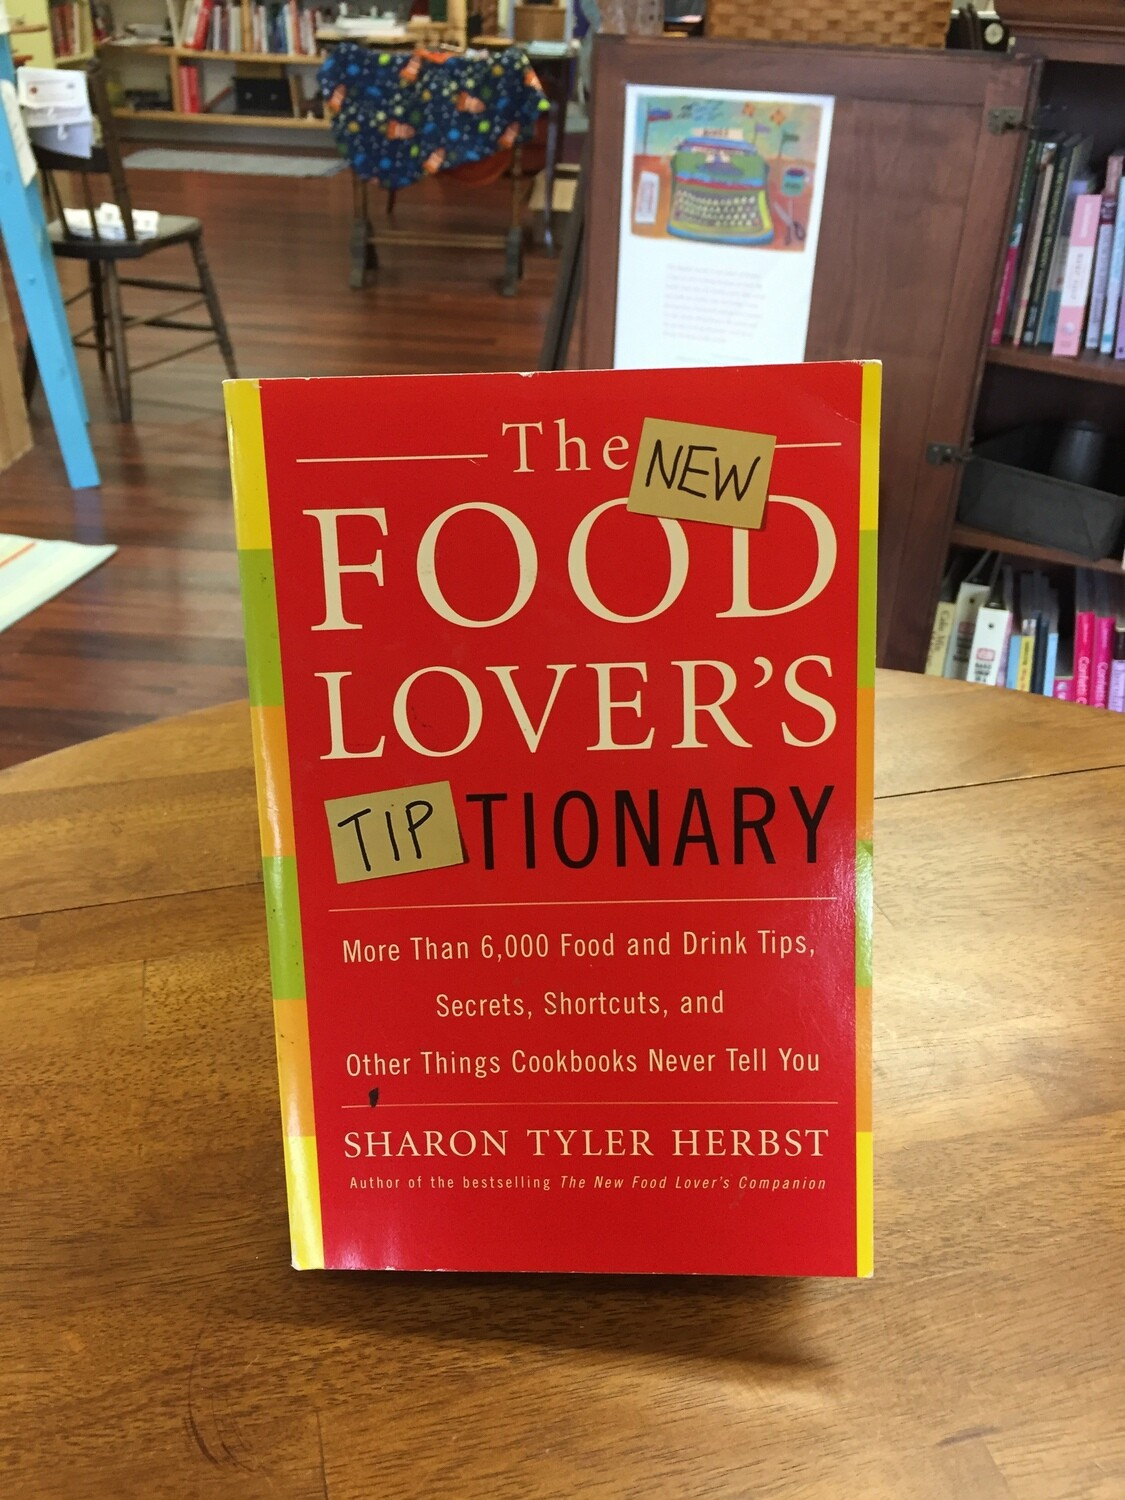 The New Food Lover's Tiptionary